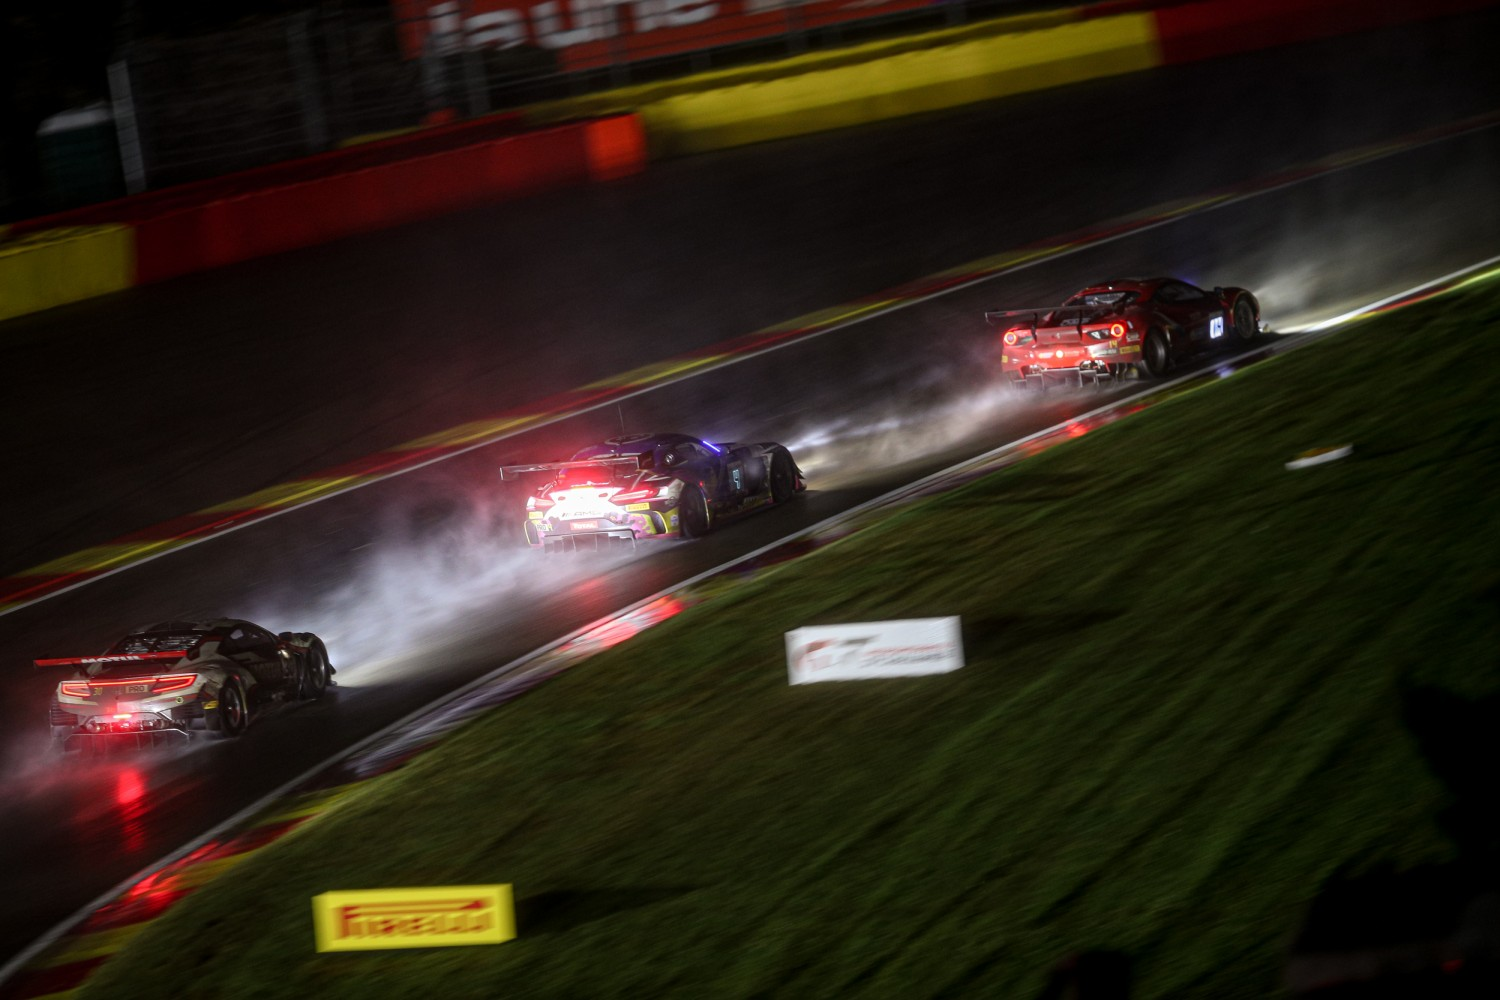 Heavy rain stops play at Spa; no restart until at least 11:30